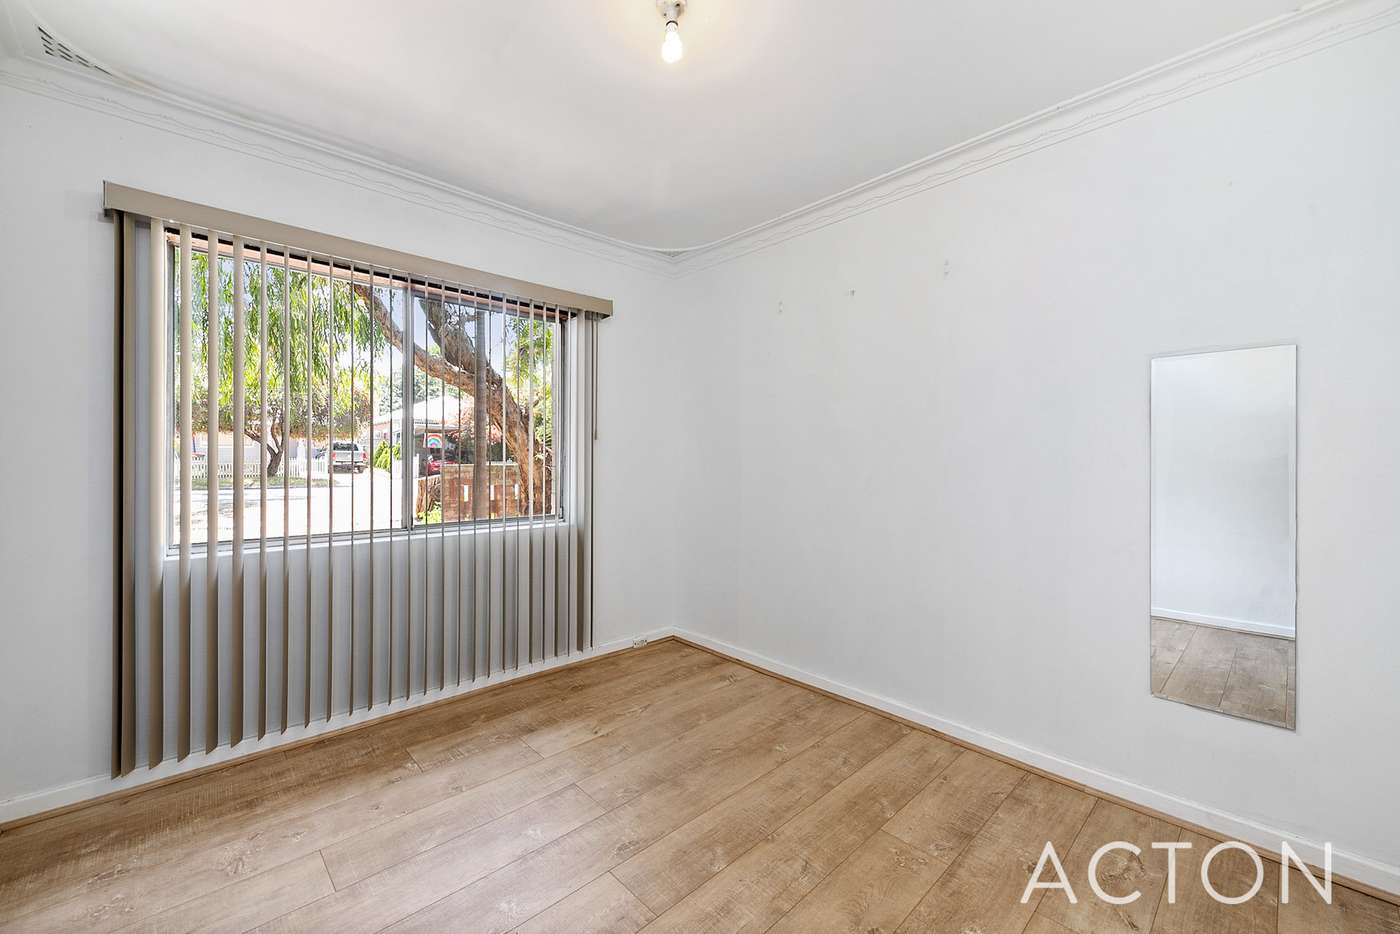 Sixth view of Homely house listing, 45 Aberdare Road, Nedlands WA 6009